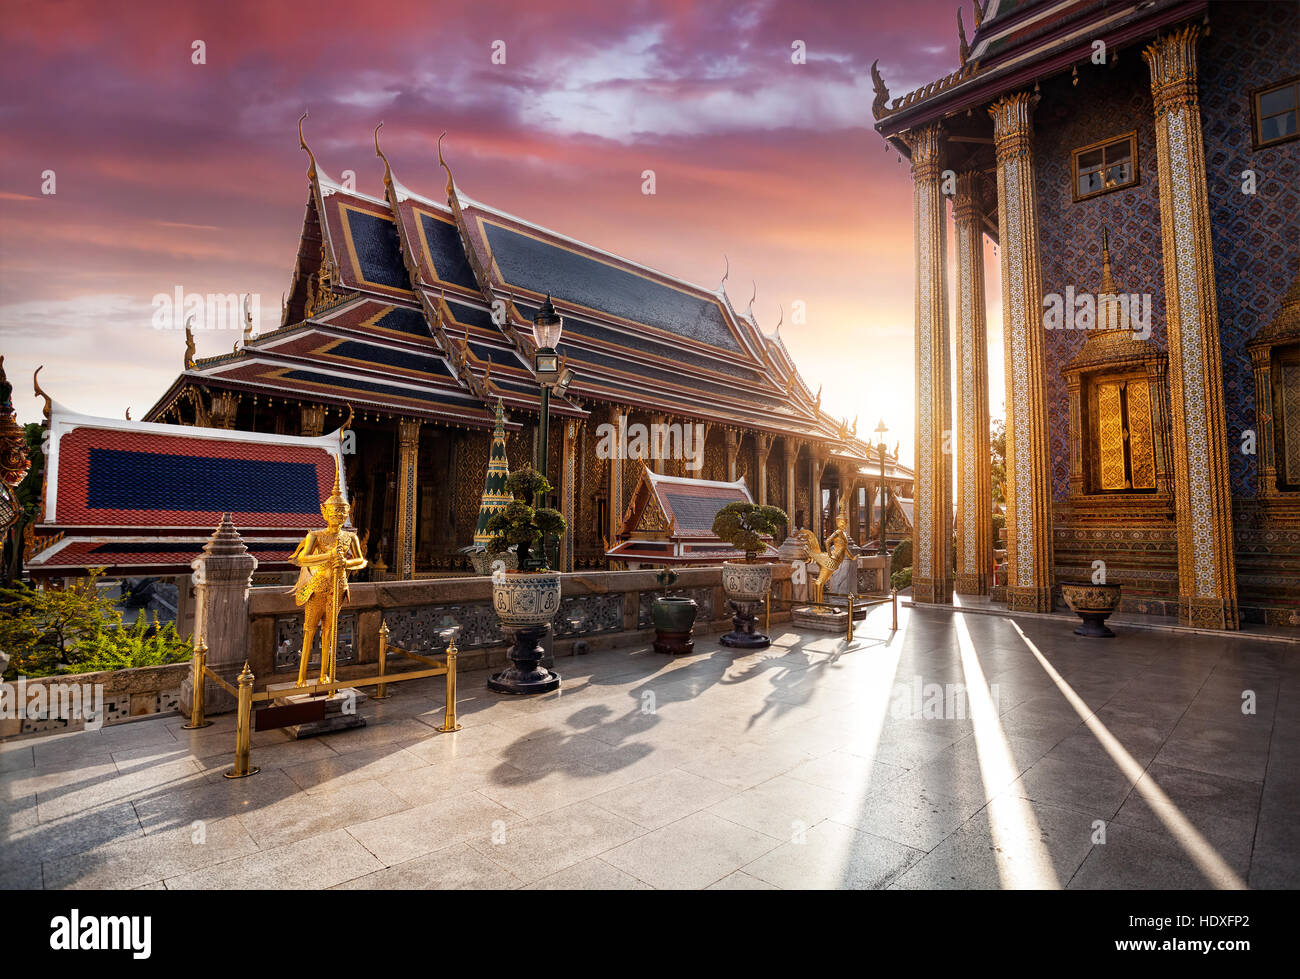 Temple of the Emerald Buddha Wat Phra Kaew in Bangkok at sunset - Stock Image